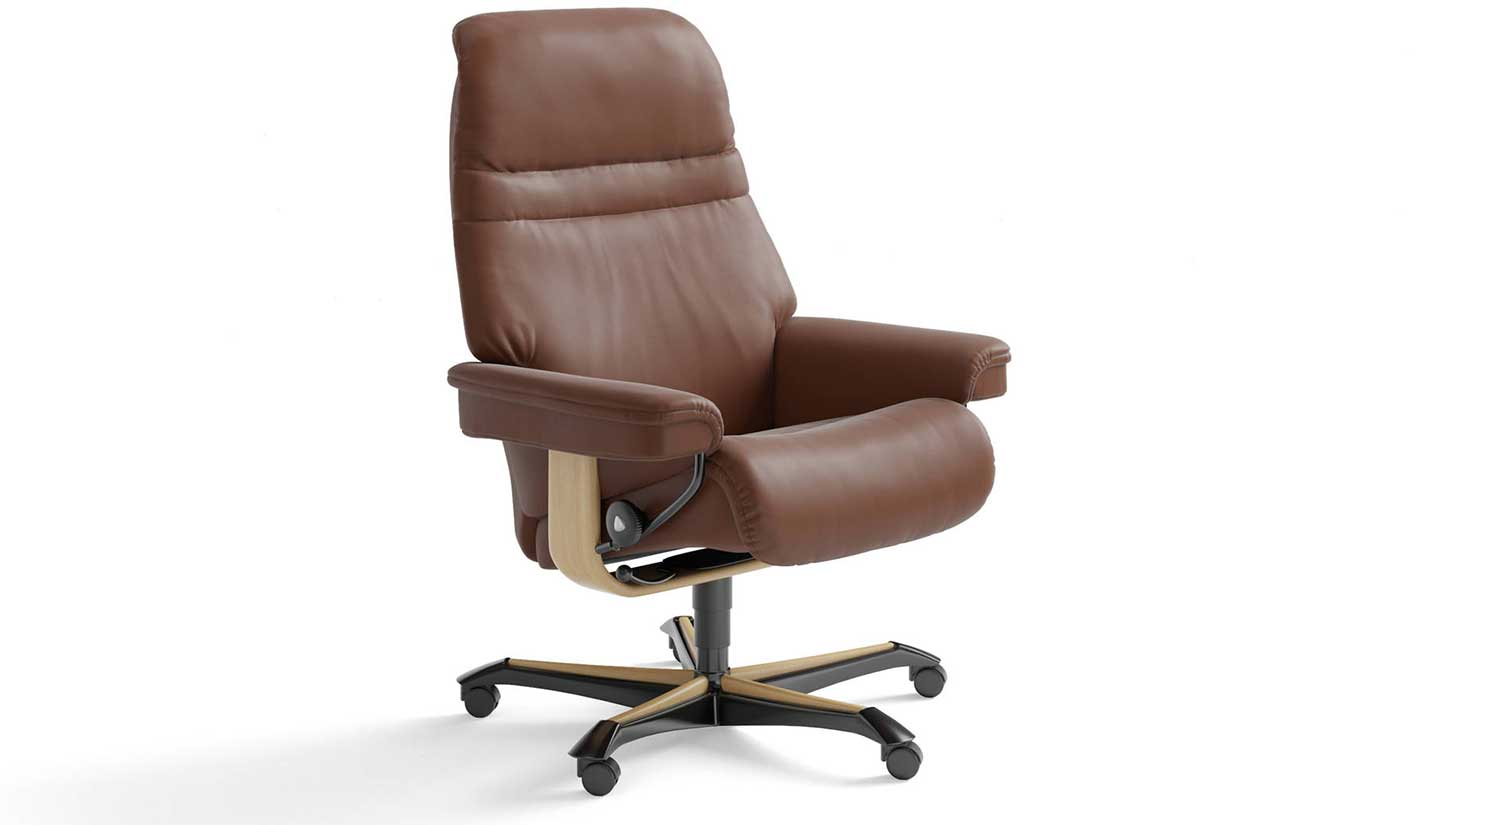 circle furniture stressless sunrise office chair stressless